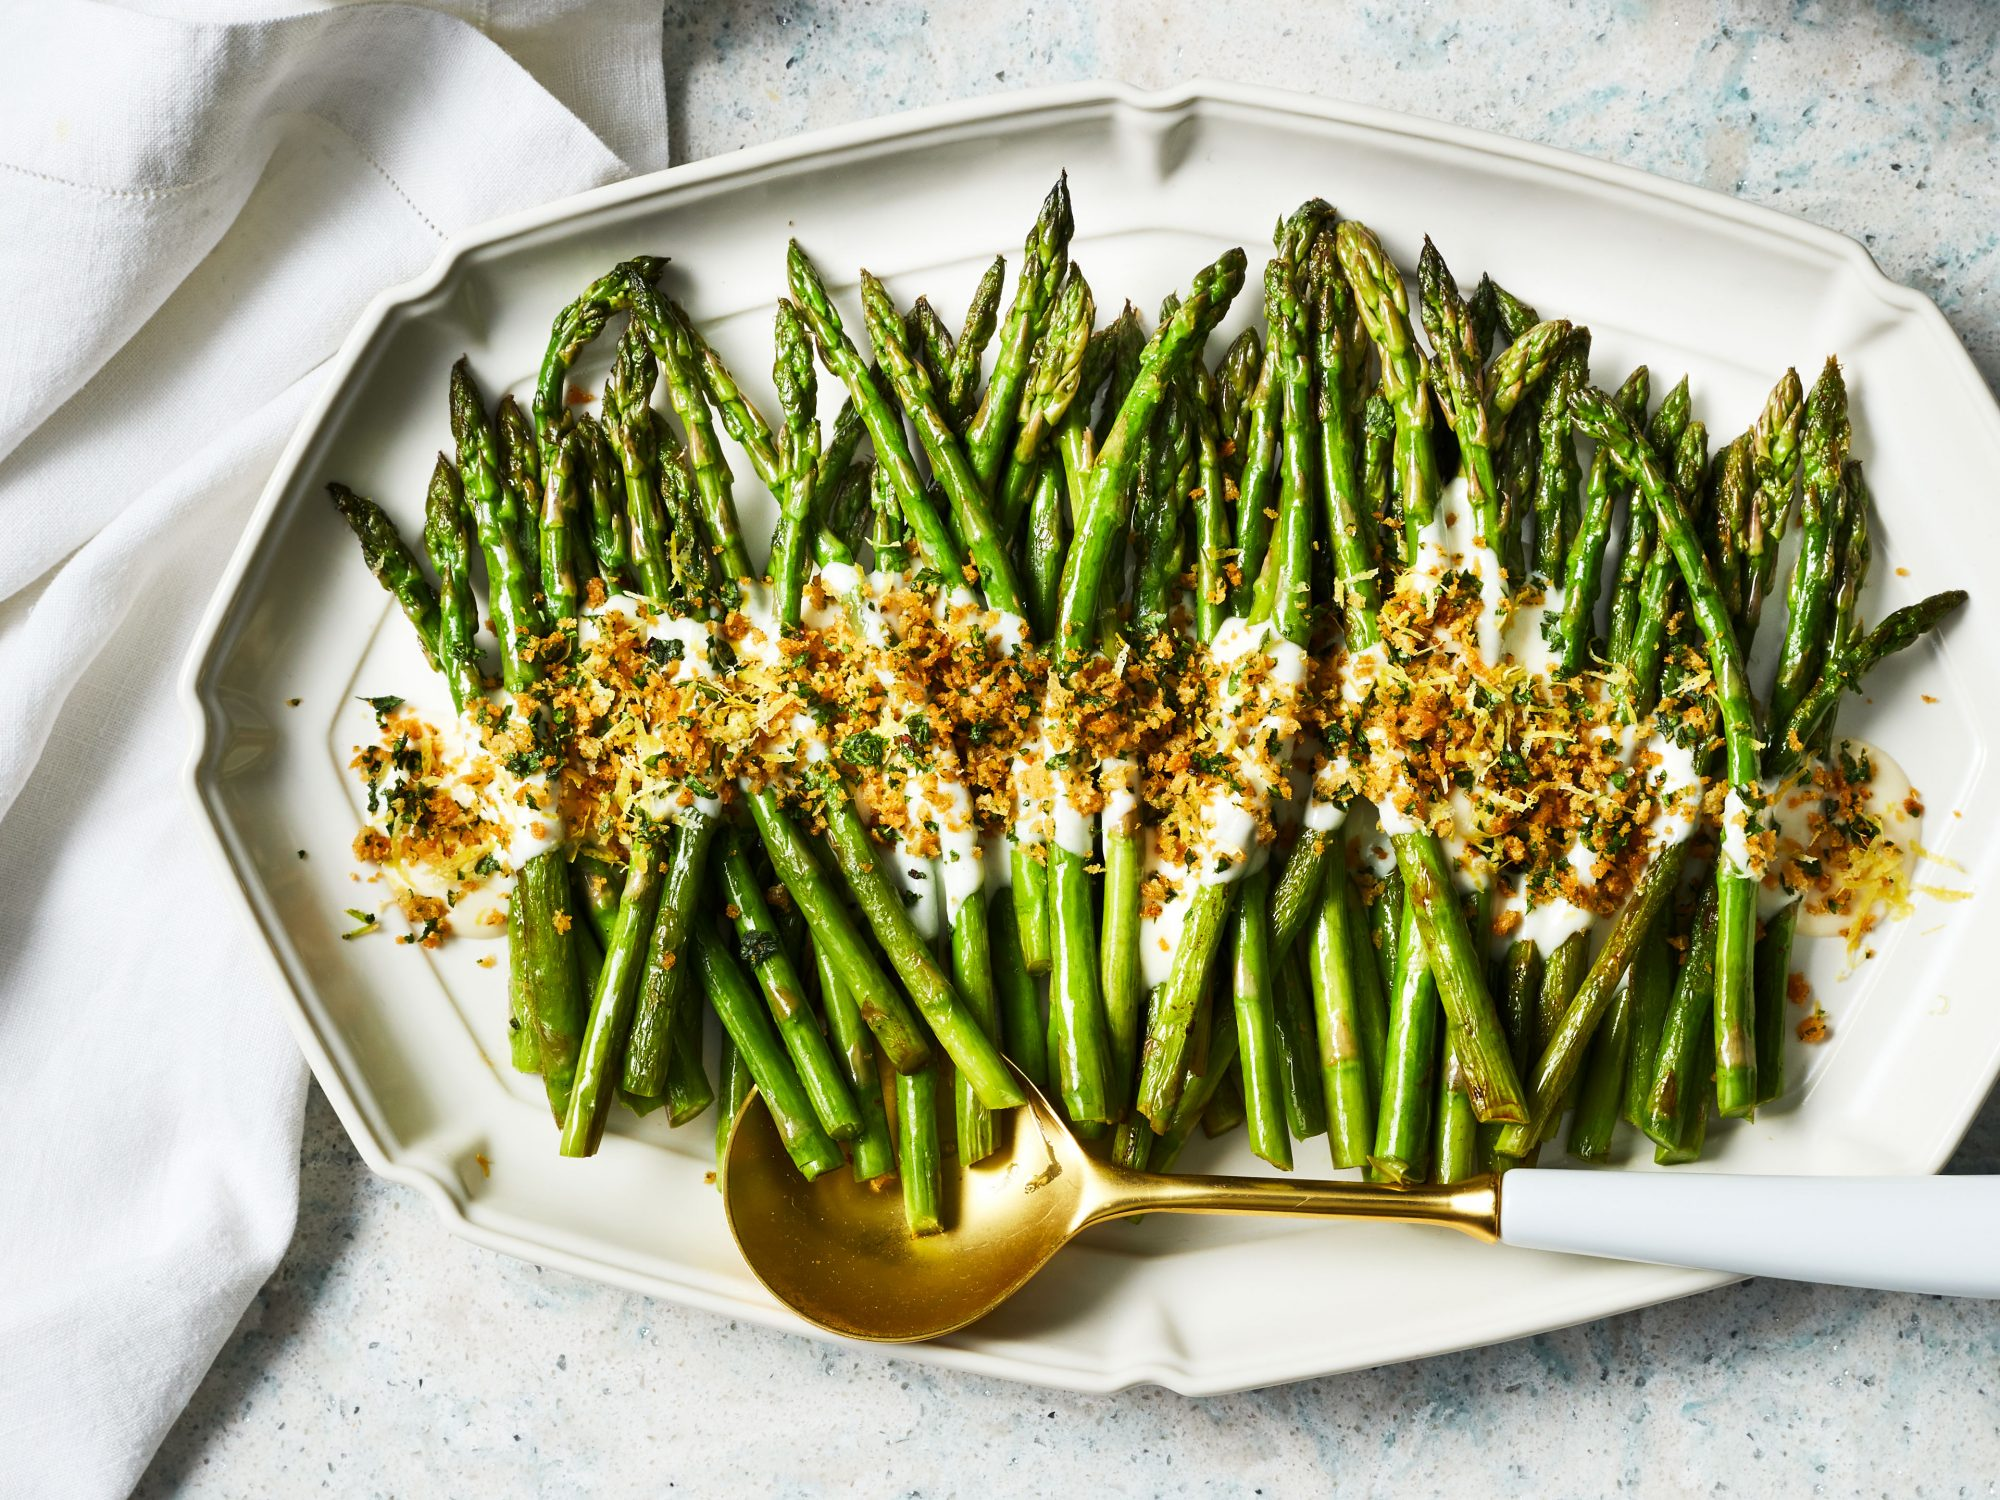 Asparagus with Cheese Sauce and Herb Breadcrumbs